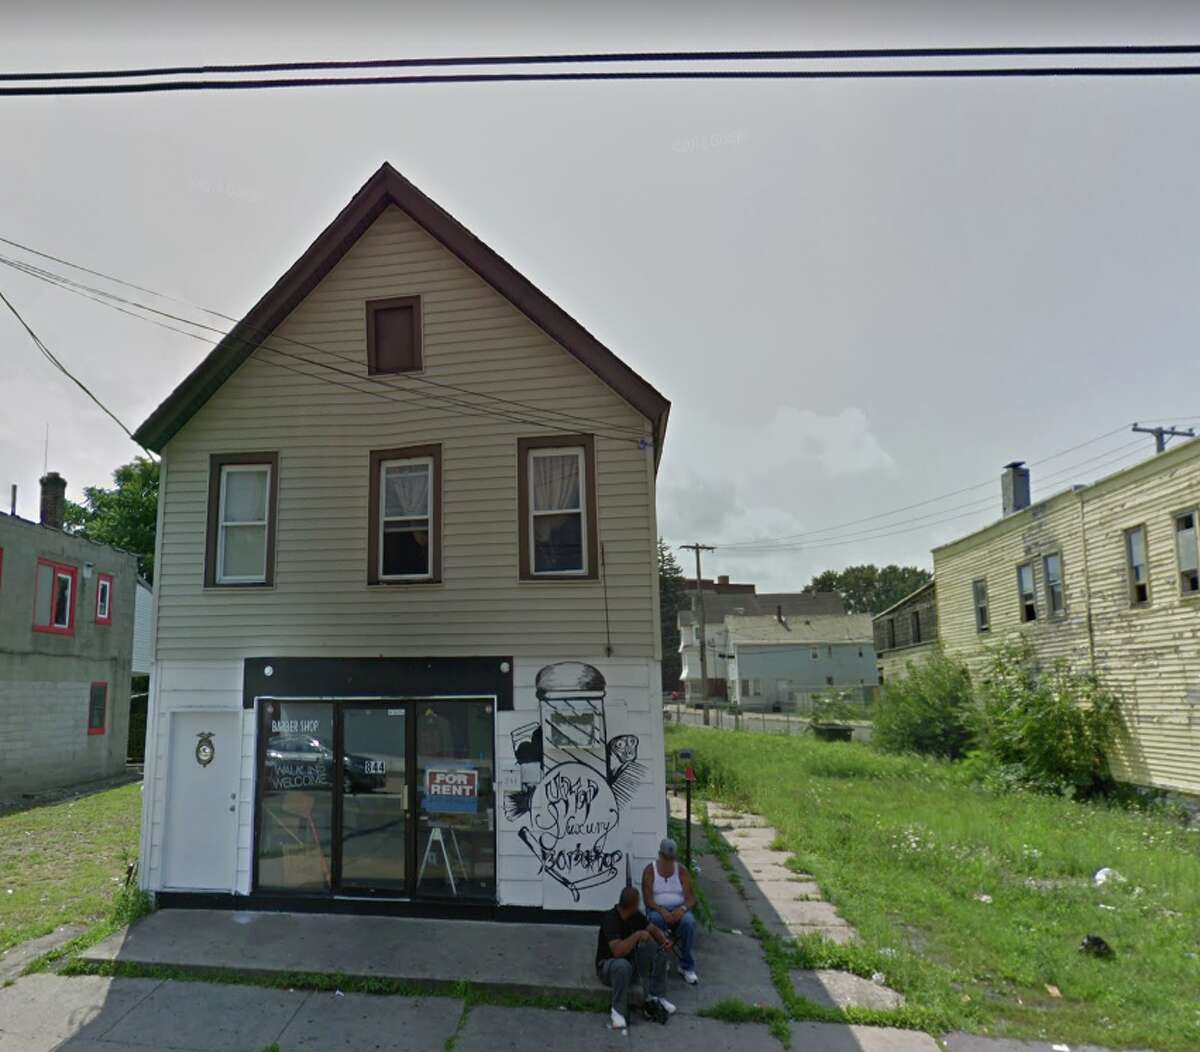 Hamilton Hill residents oppose plans to open a wine and liquor in this former barber shop at 844 Albany St. in Schenectady, N.Y., shown here in an August 2018 Google StreetView photo.